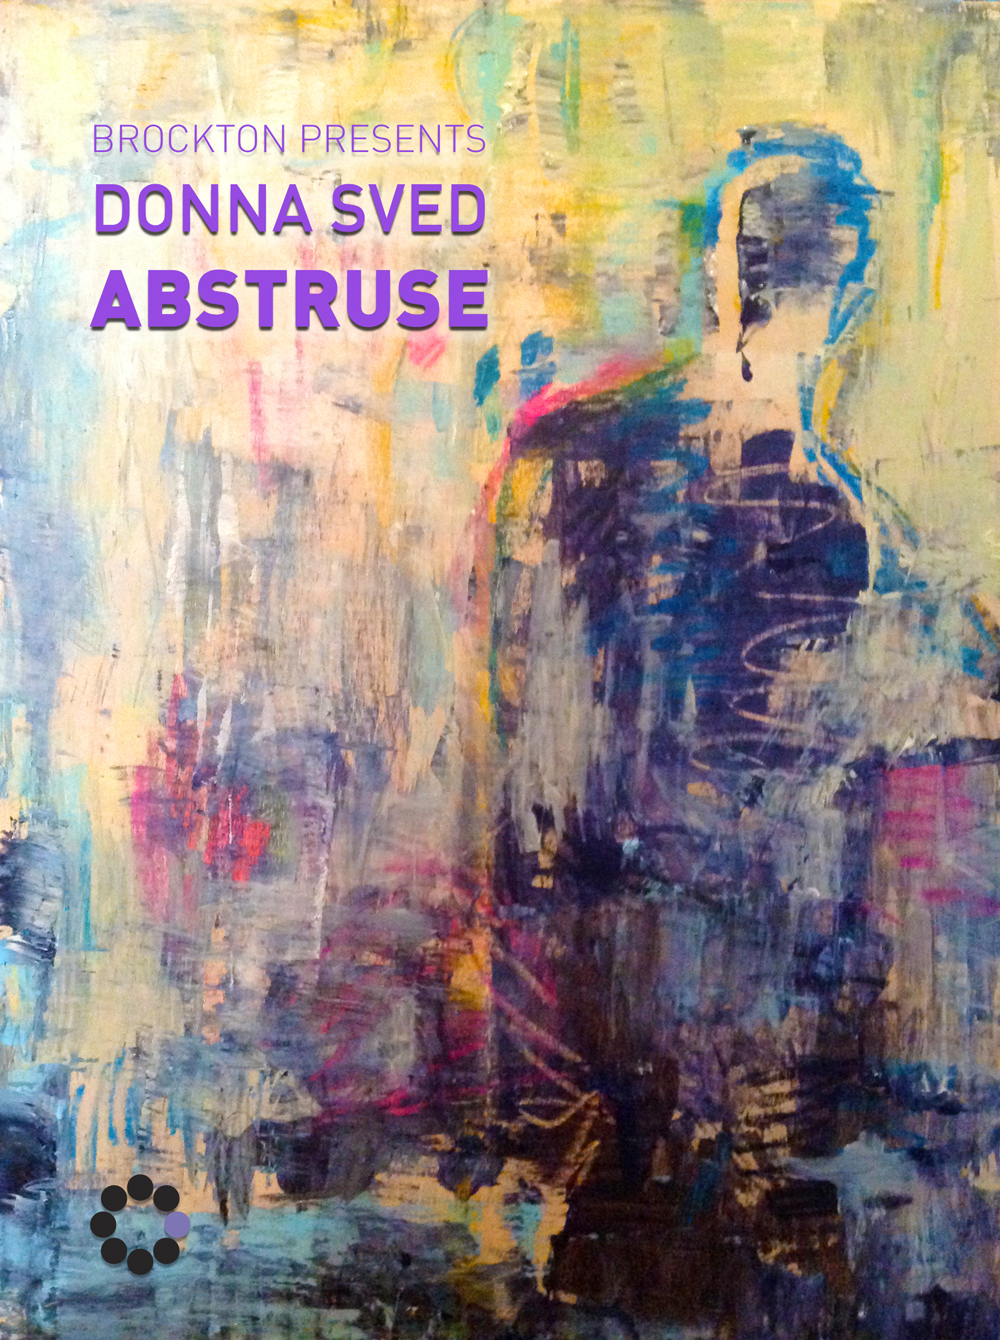 Brockton Presents: Donna Sved | Abstruse